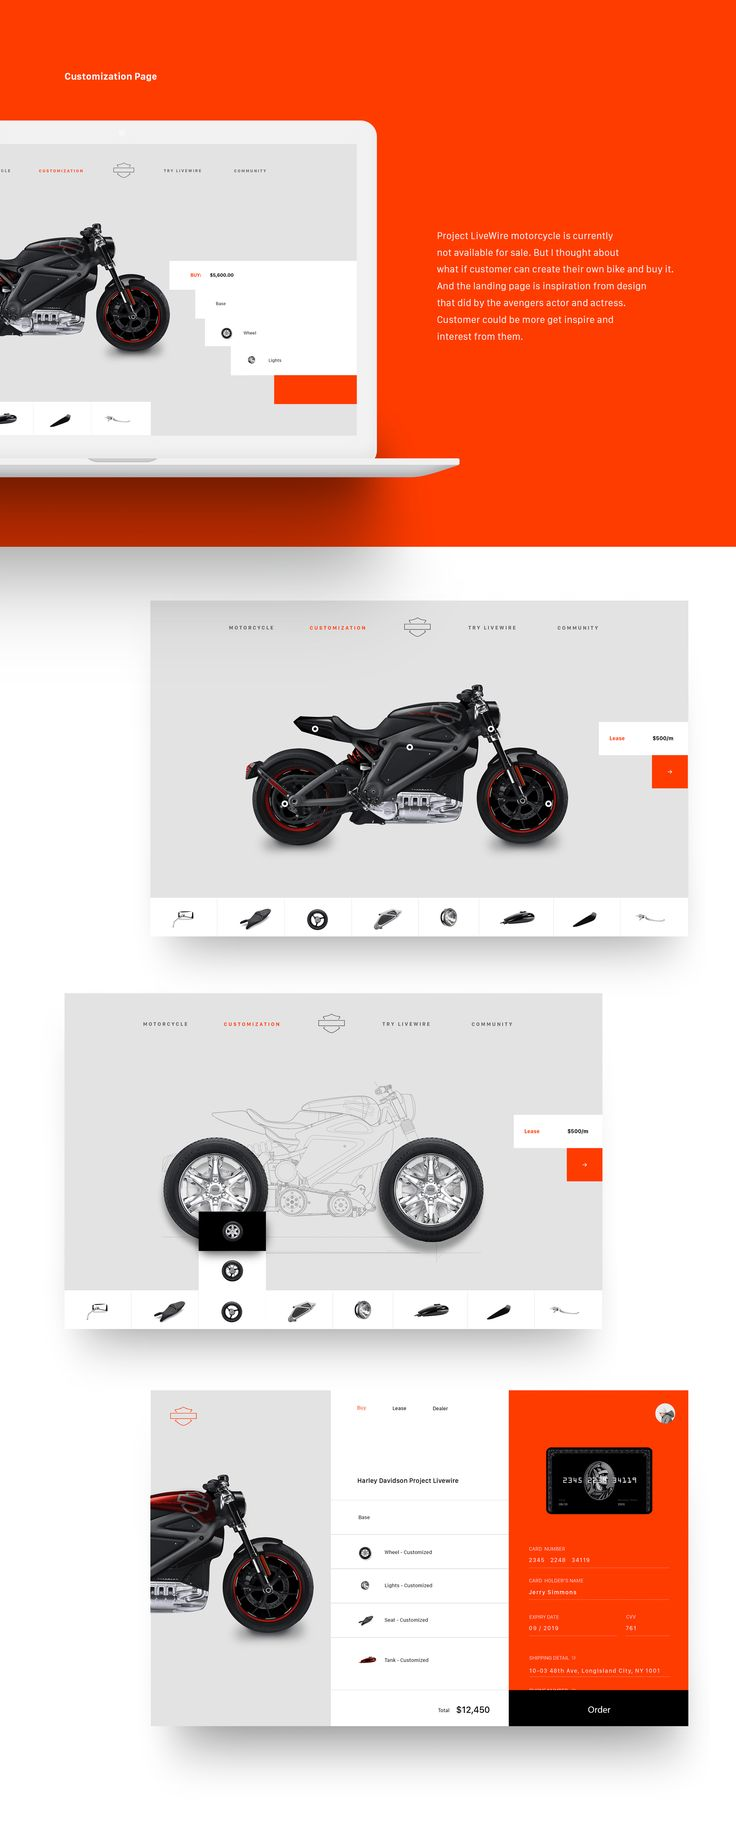 Harley Davidson - Project Livewire Website Redesign